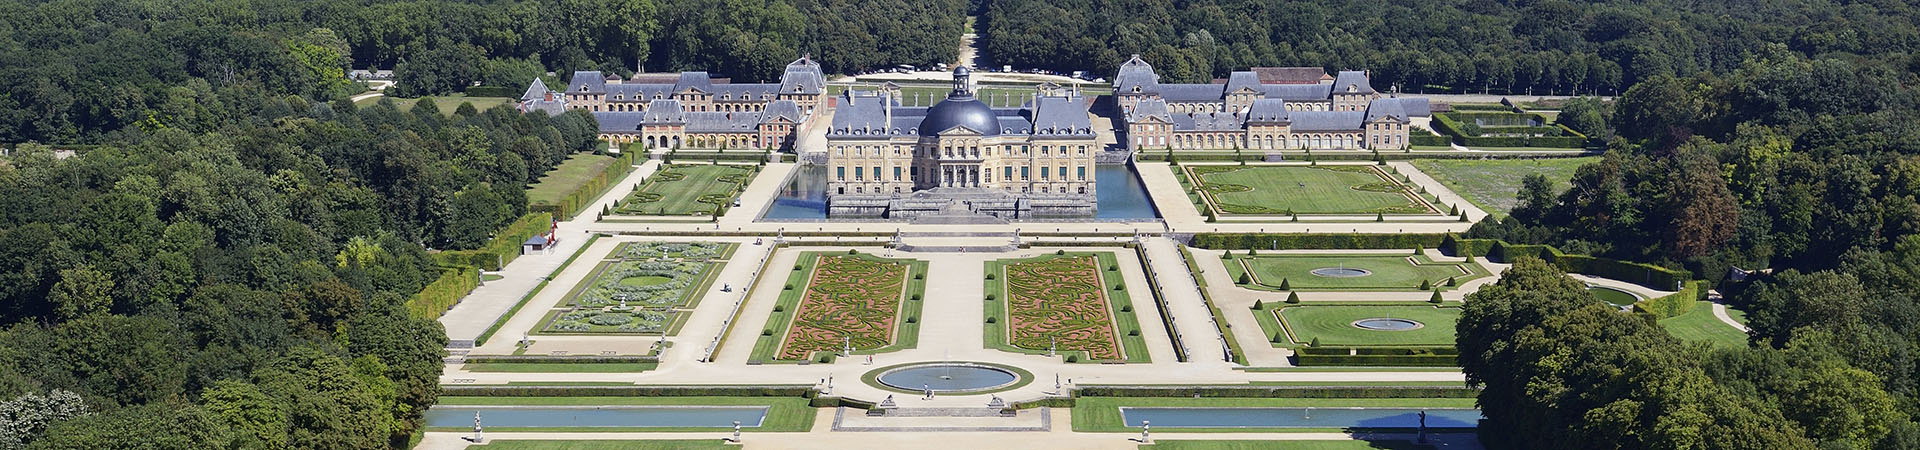 Vaux-le-Vicomte Backgrounds, Compatible - PC, Mobile, Gadgets| 1920x450 px